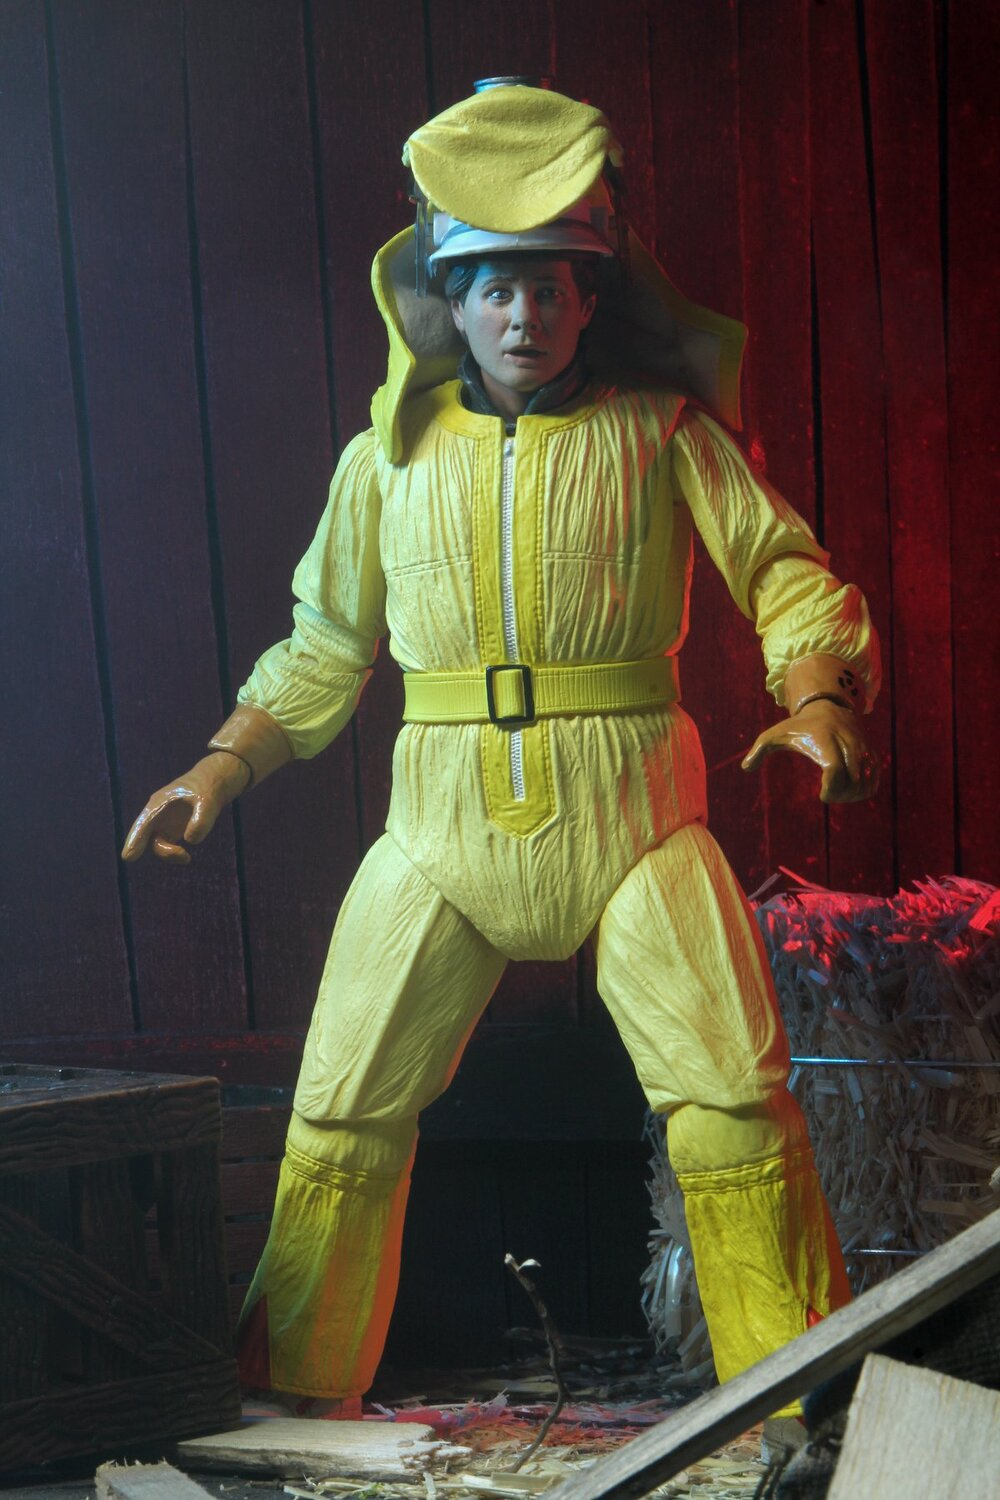 NECA-Tales-From-Space-Marty-Figure-009.jpg